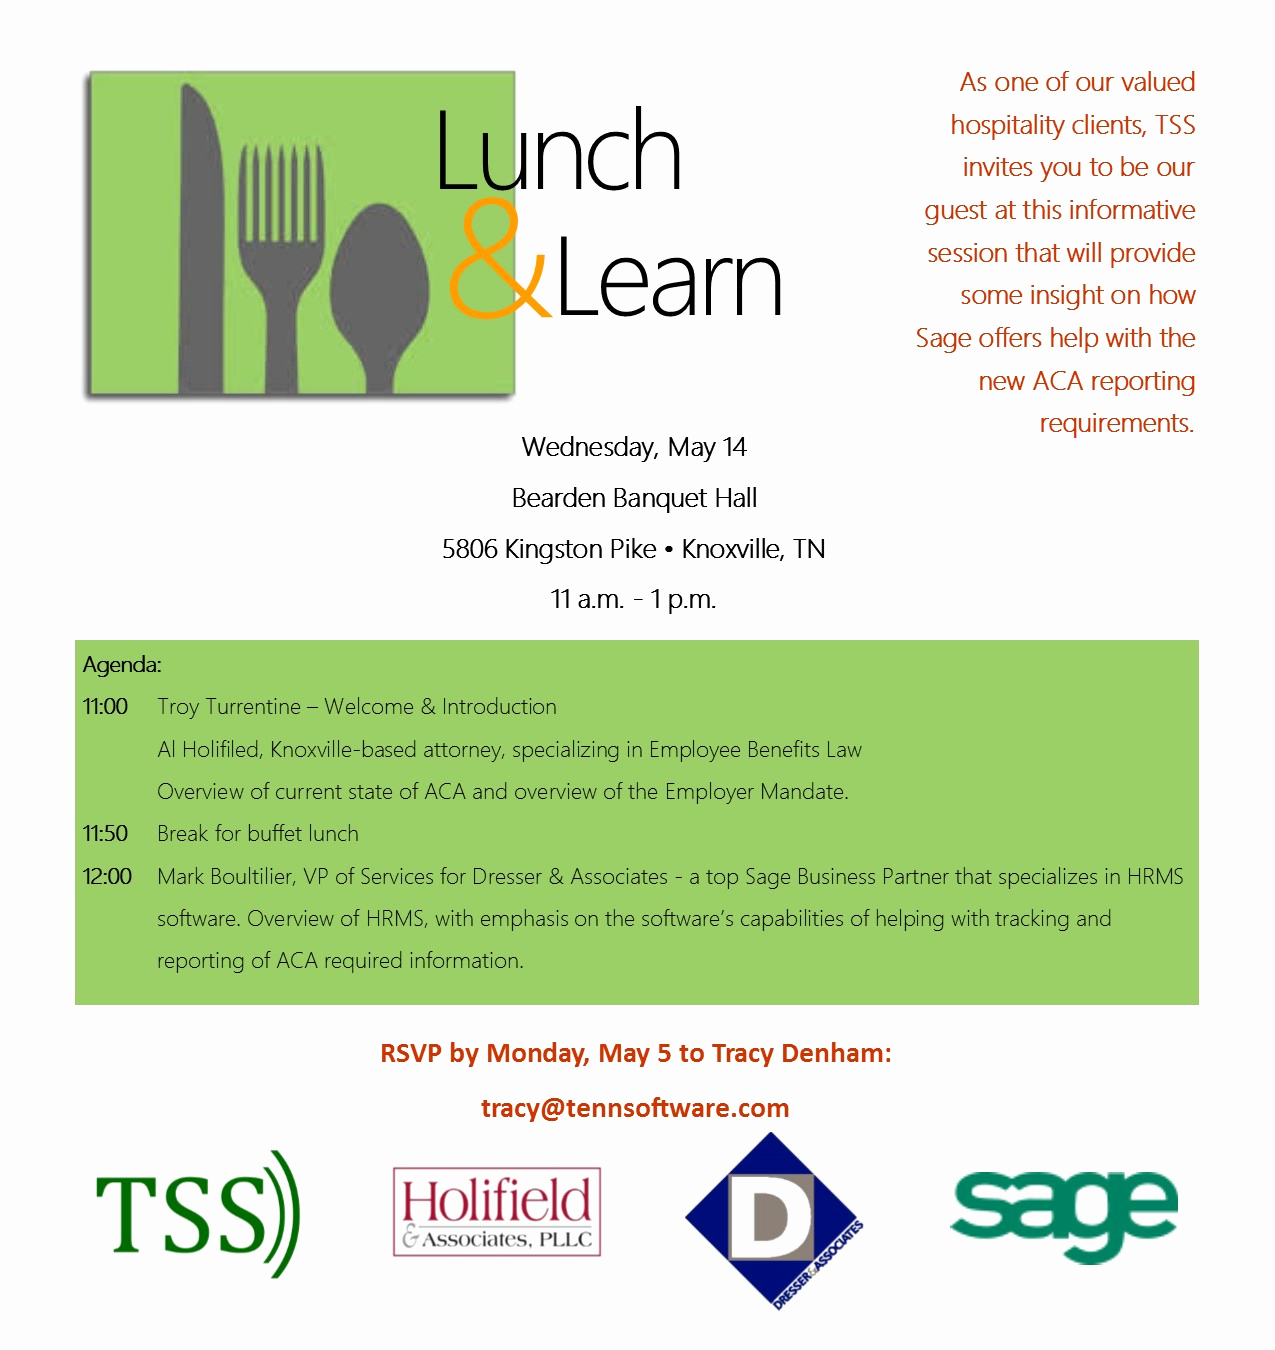 Lunch and Learn Invitation Lovely Hospitality Industry Lunch & Learn Aca Reporting – Tss